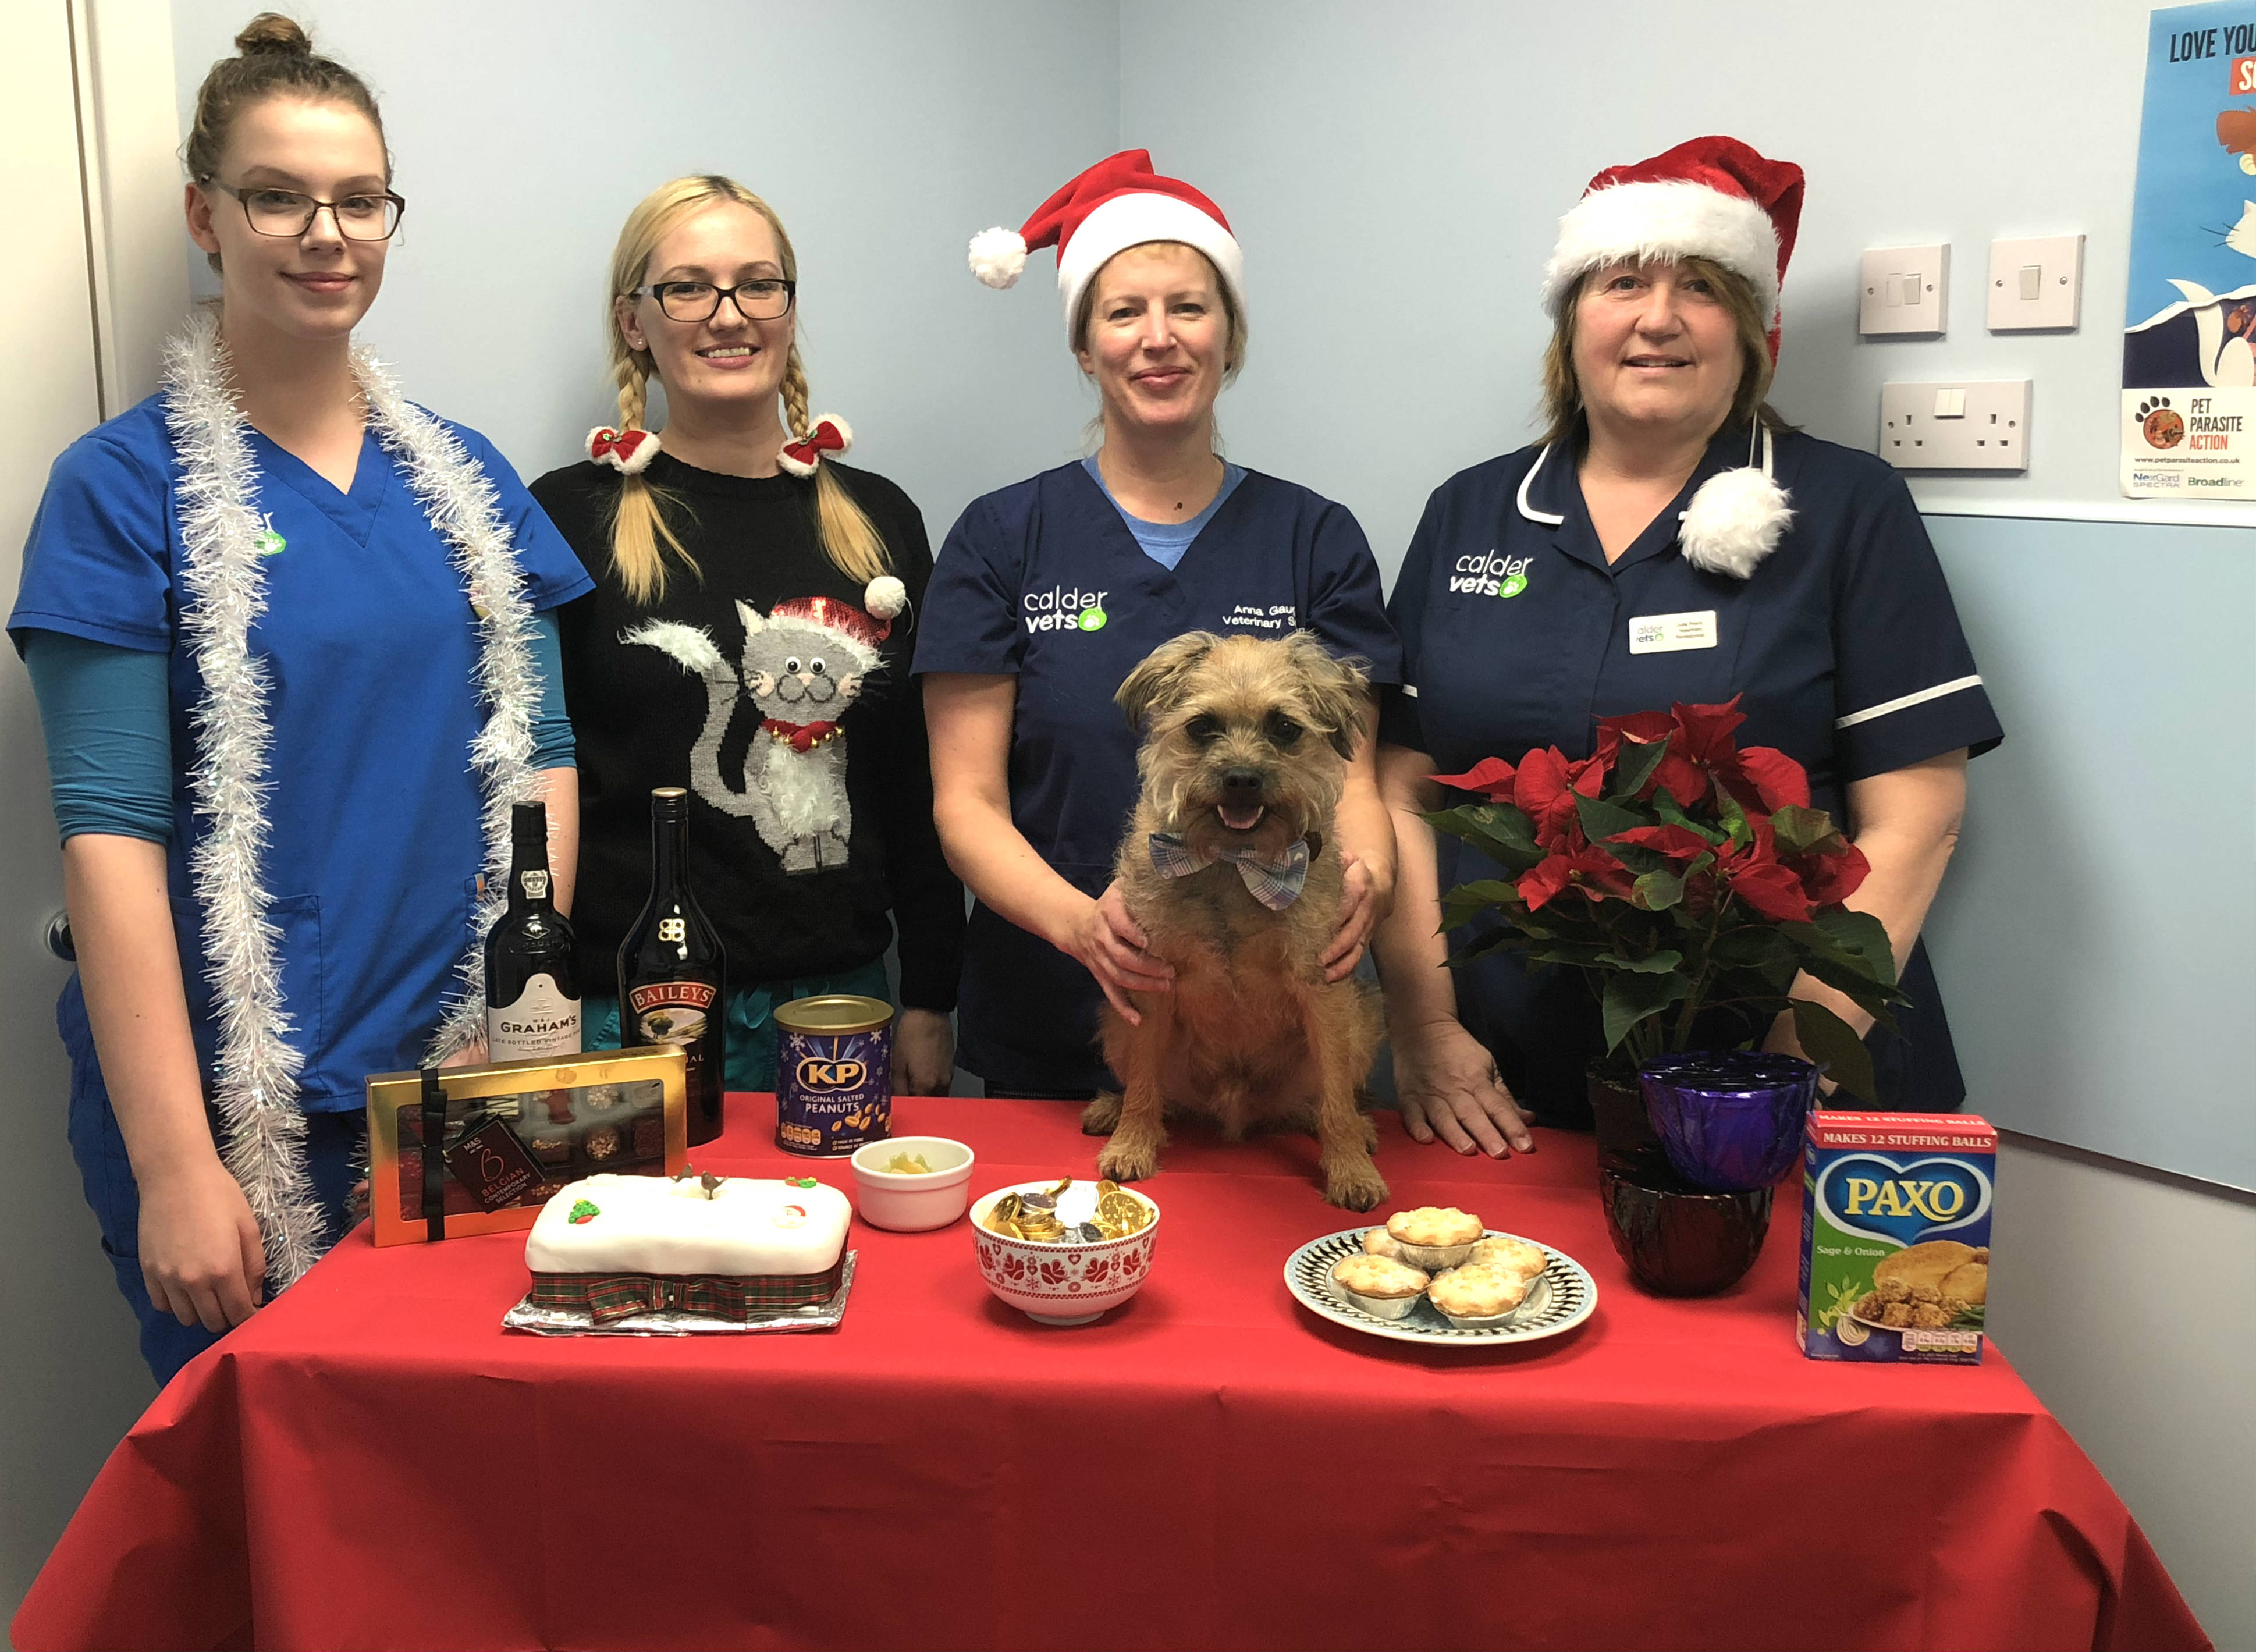 Paws for thought and protect pets at Christmas